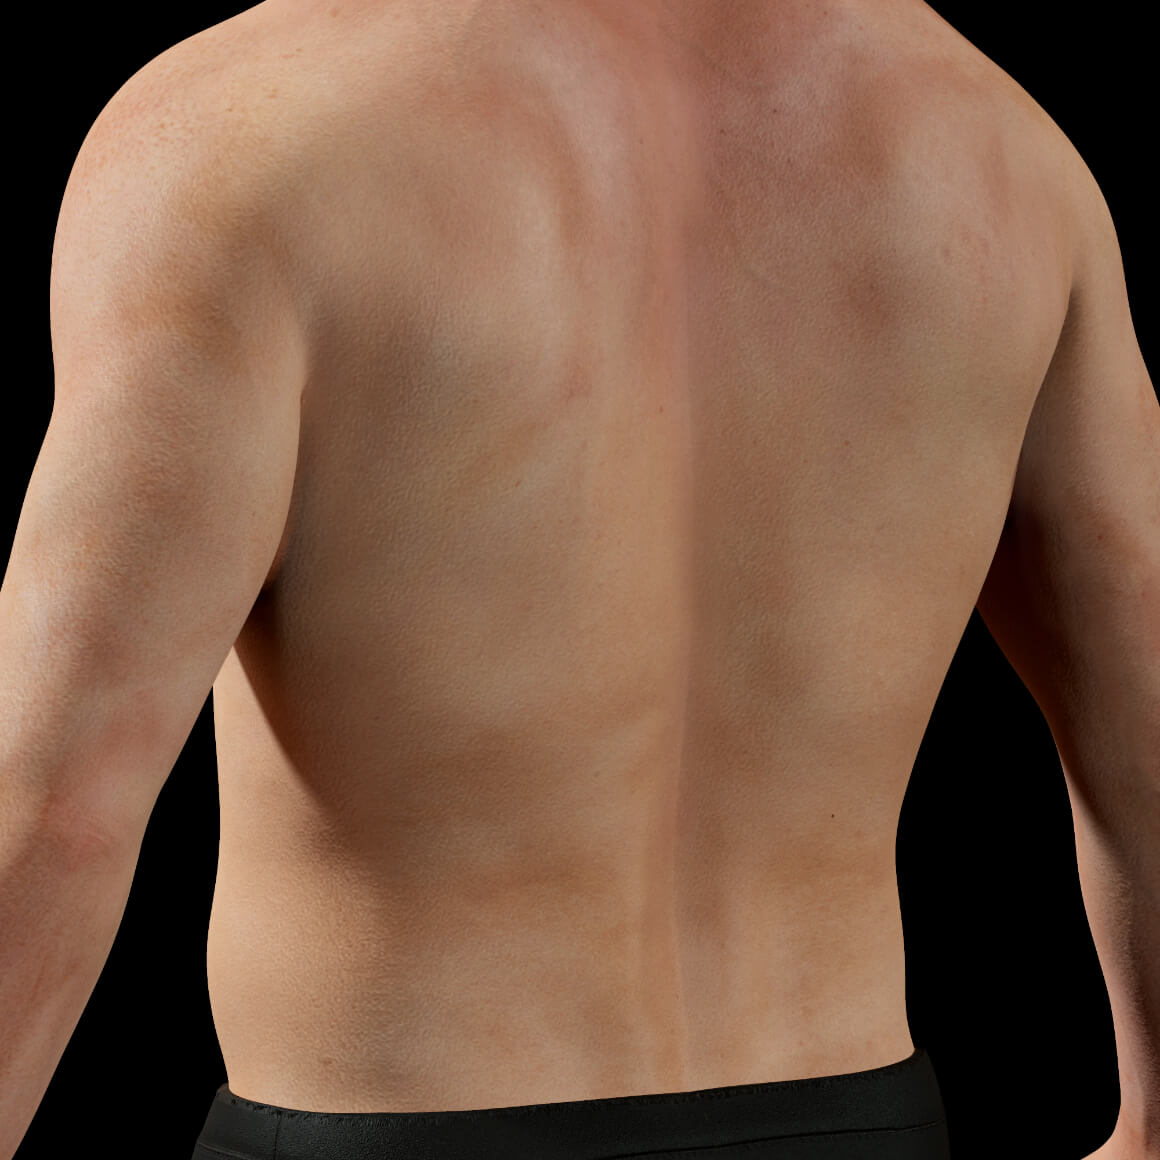 45-degree angle of the back of a male patient at Clinique Chloé after a Vbeam laser treatment to remove cherry angiomas